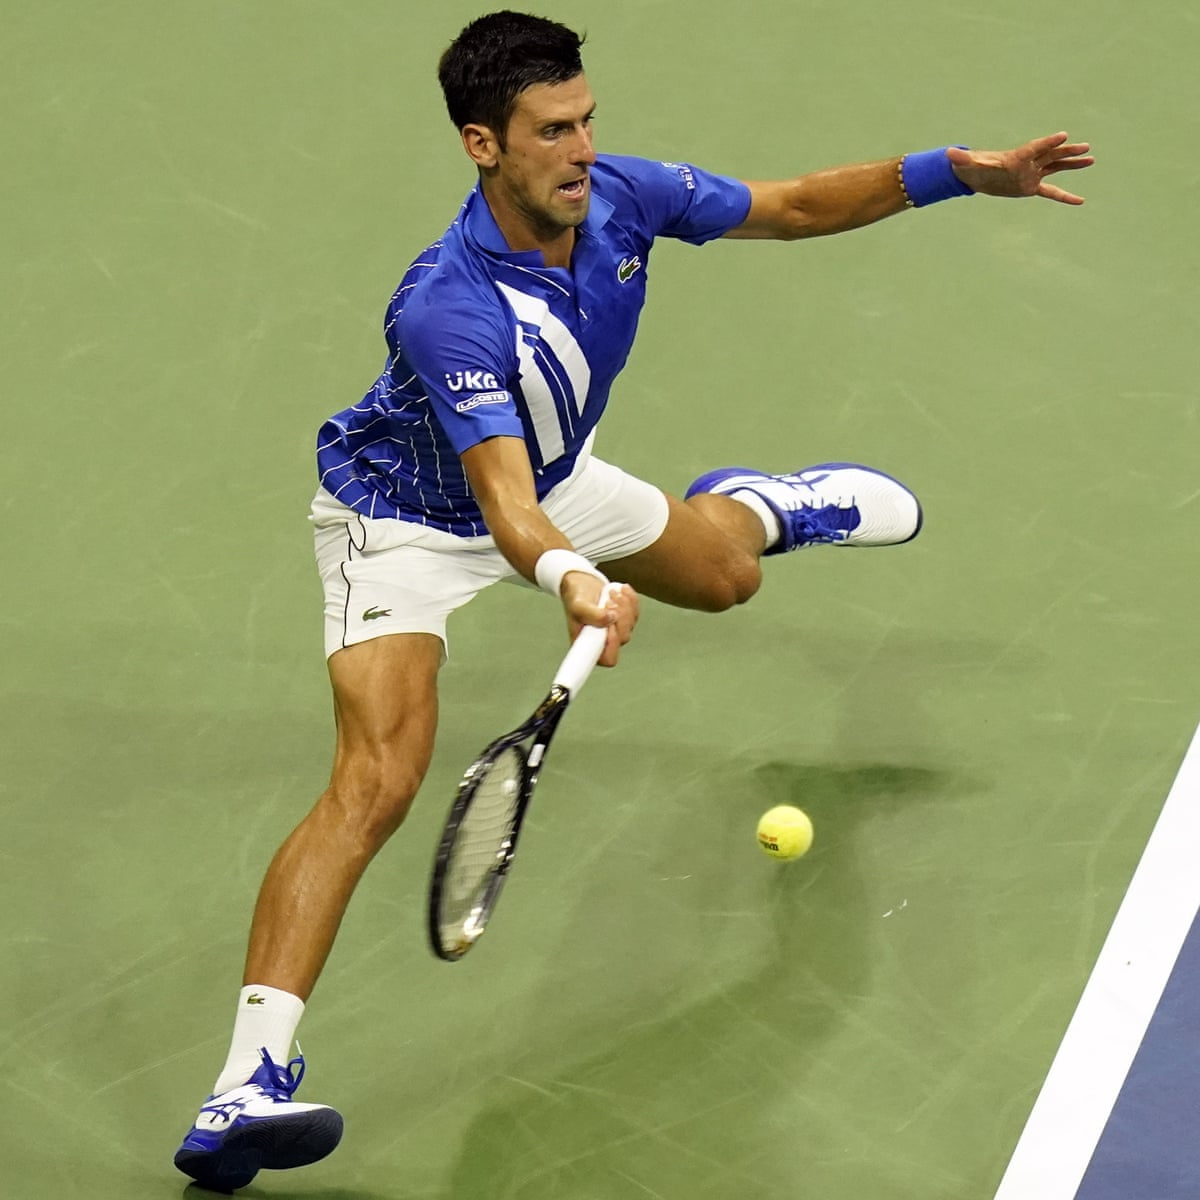 Novak Djokovic Gets Off To Flier To Set Up Clash With Kyle Edmund At Us Open Us Open Tennis The Guardian